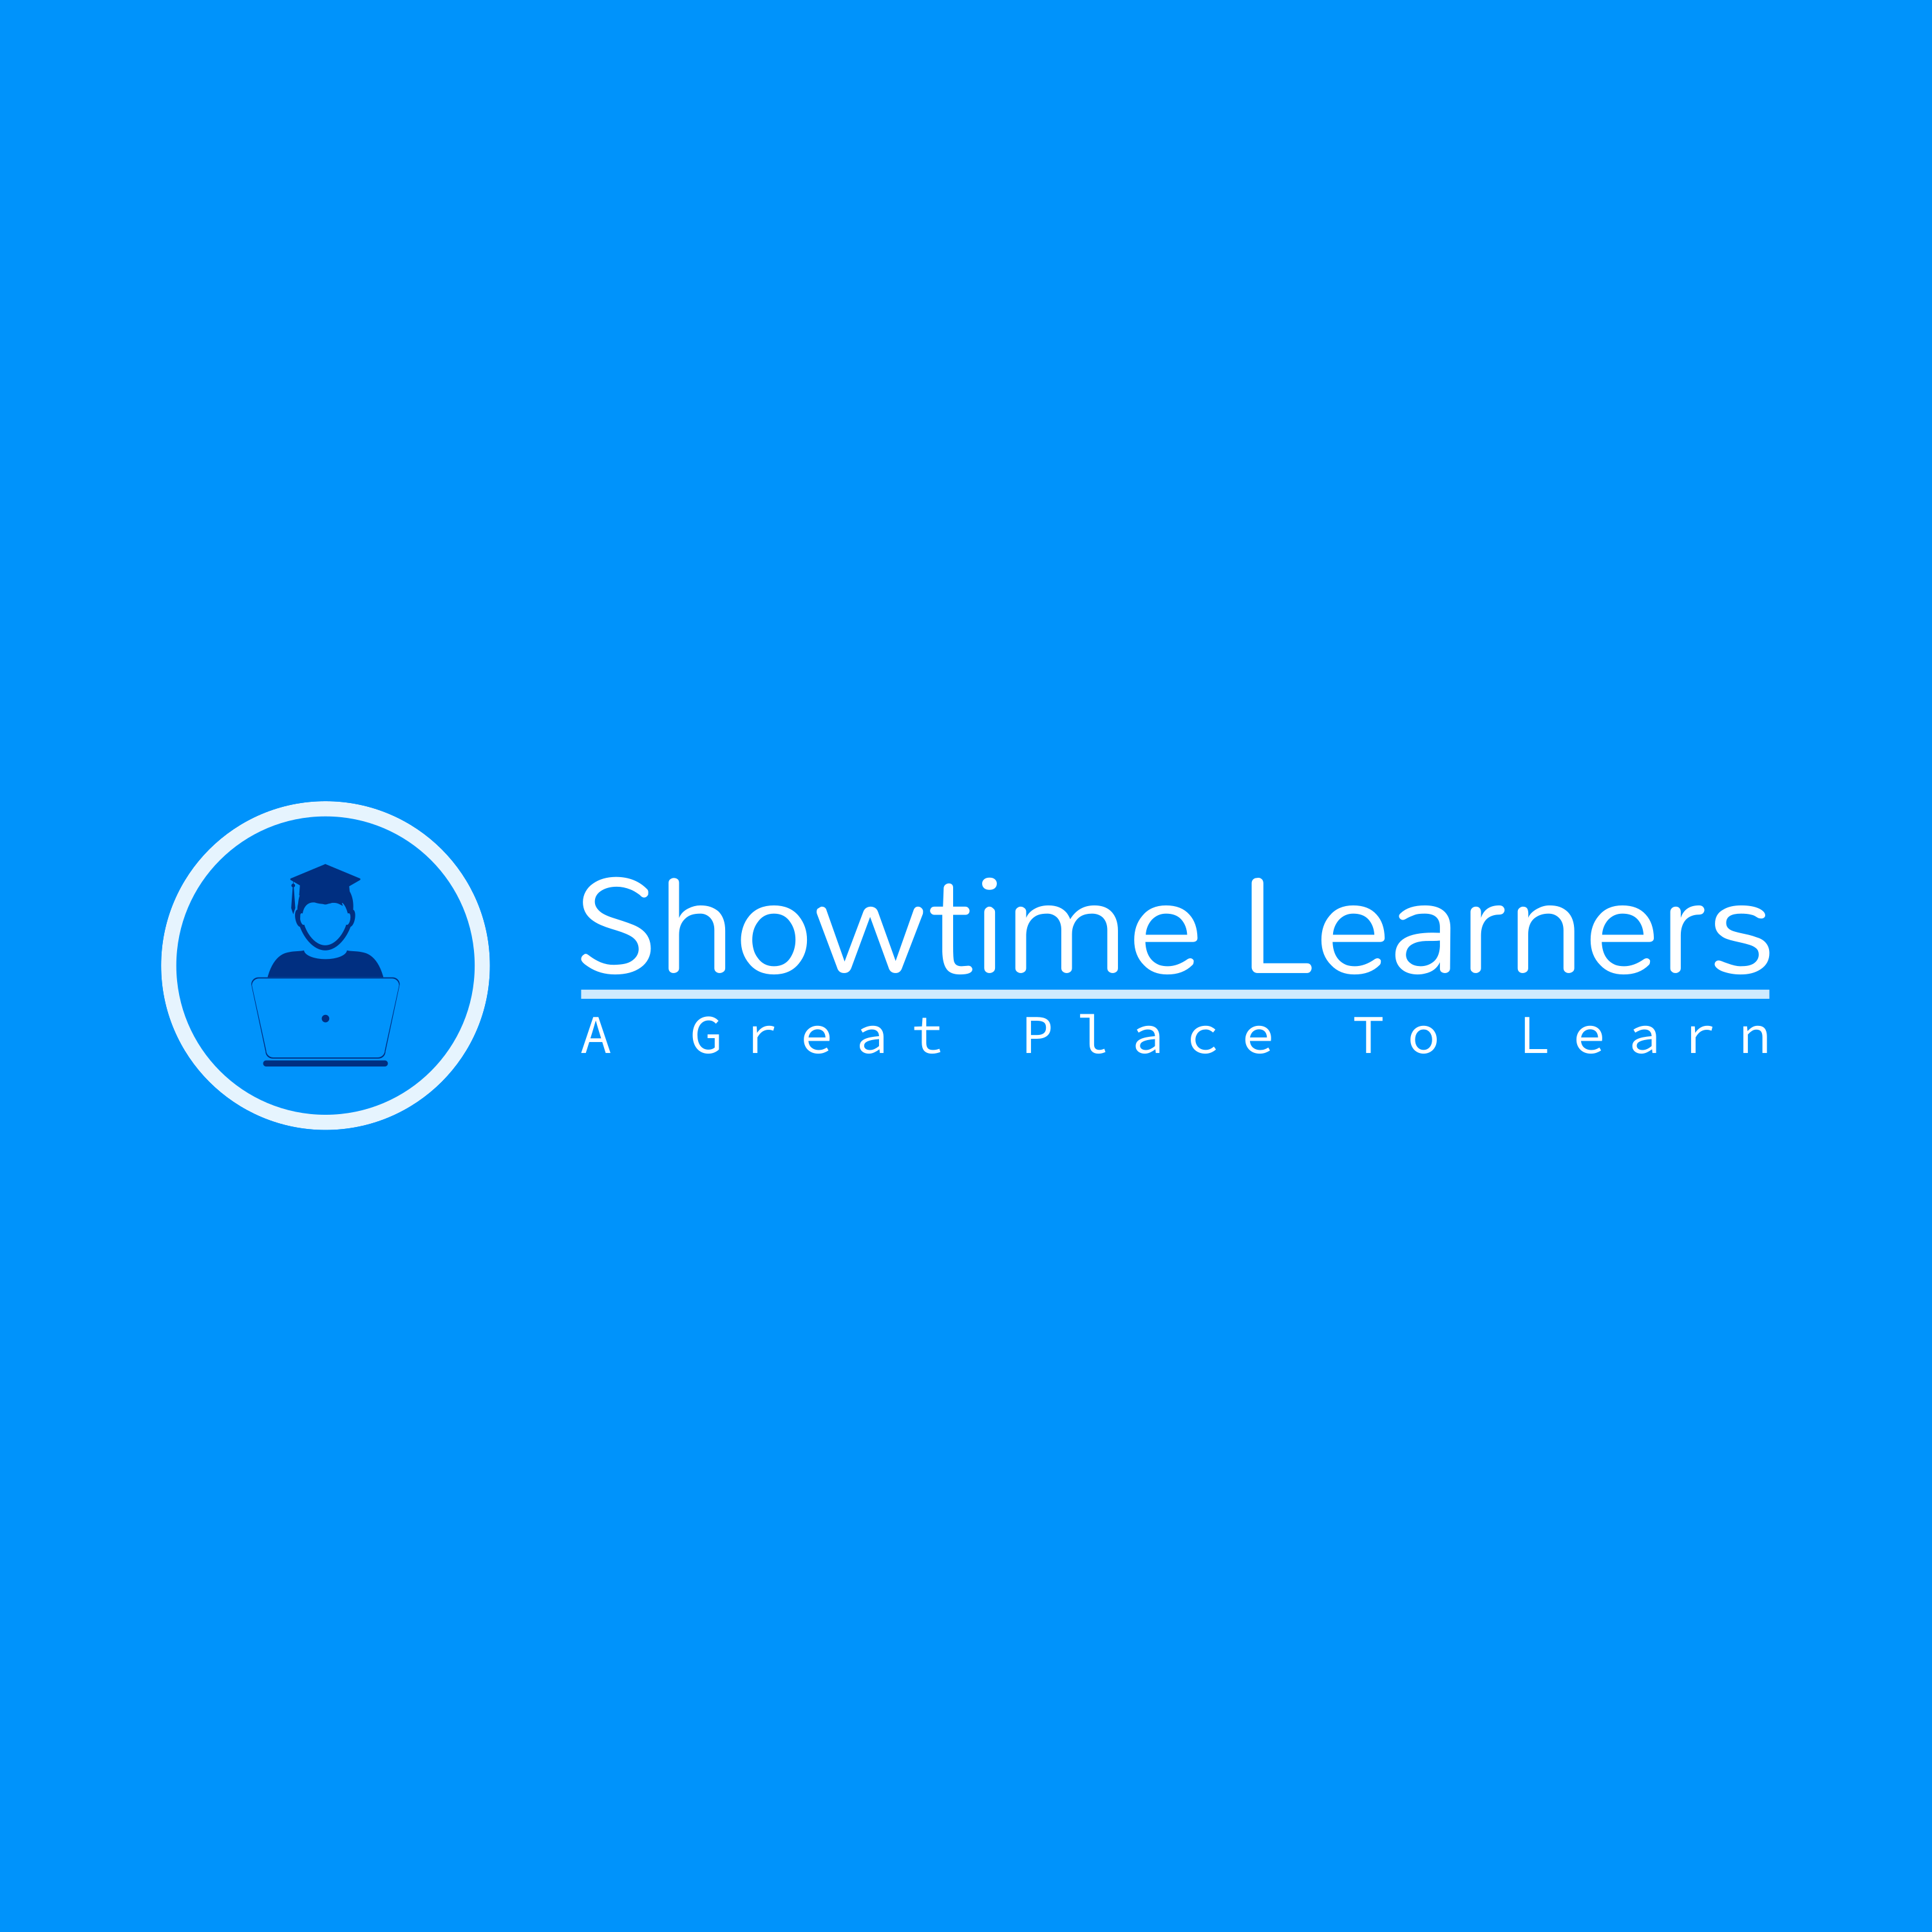 Showtime Learners